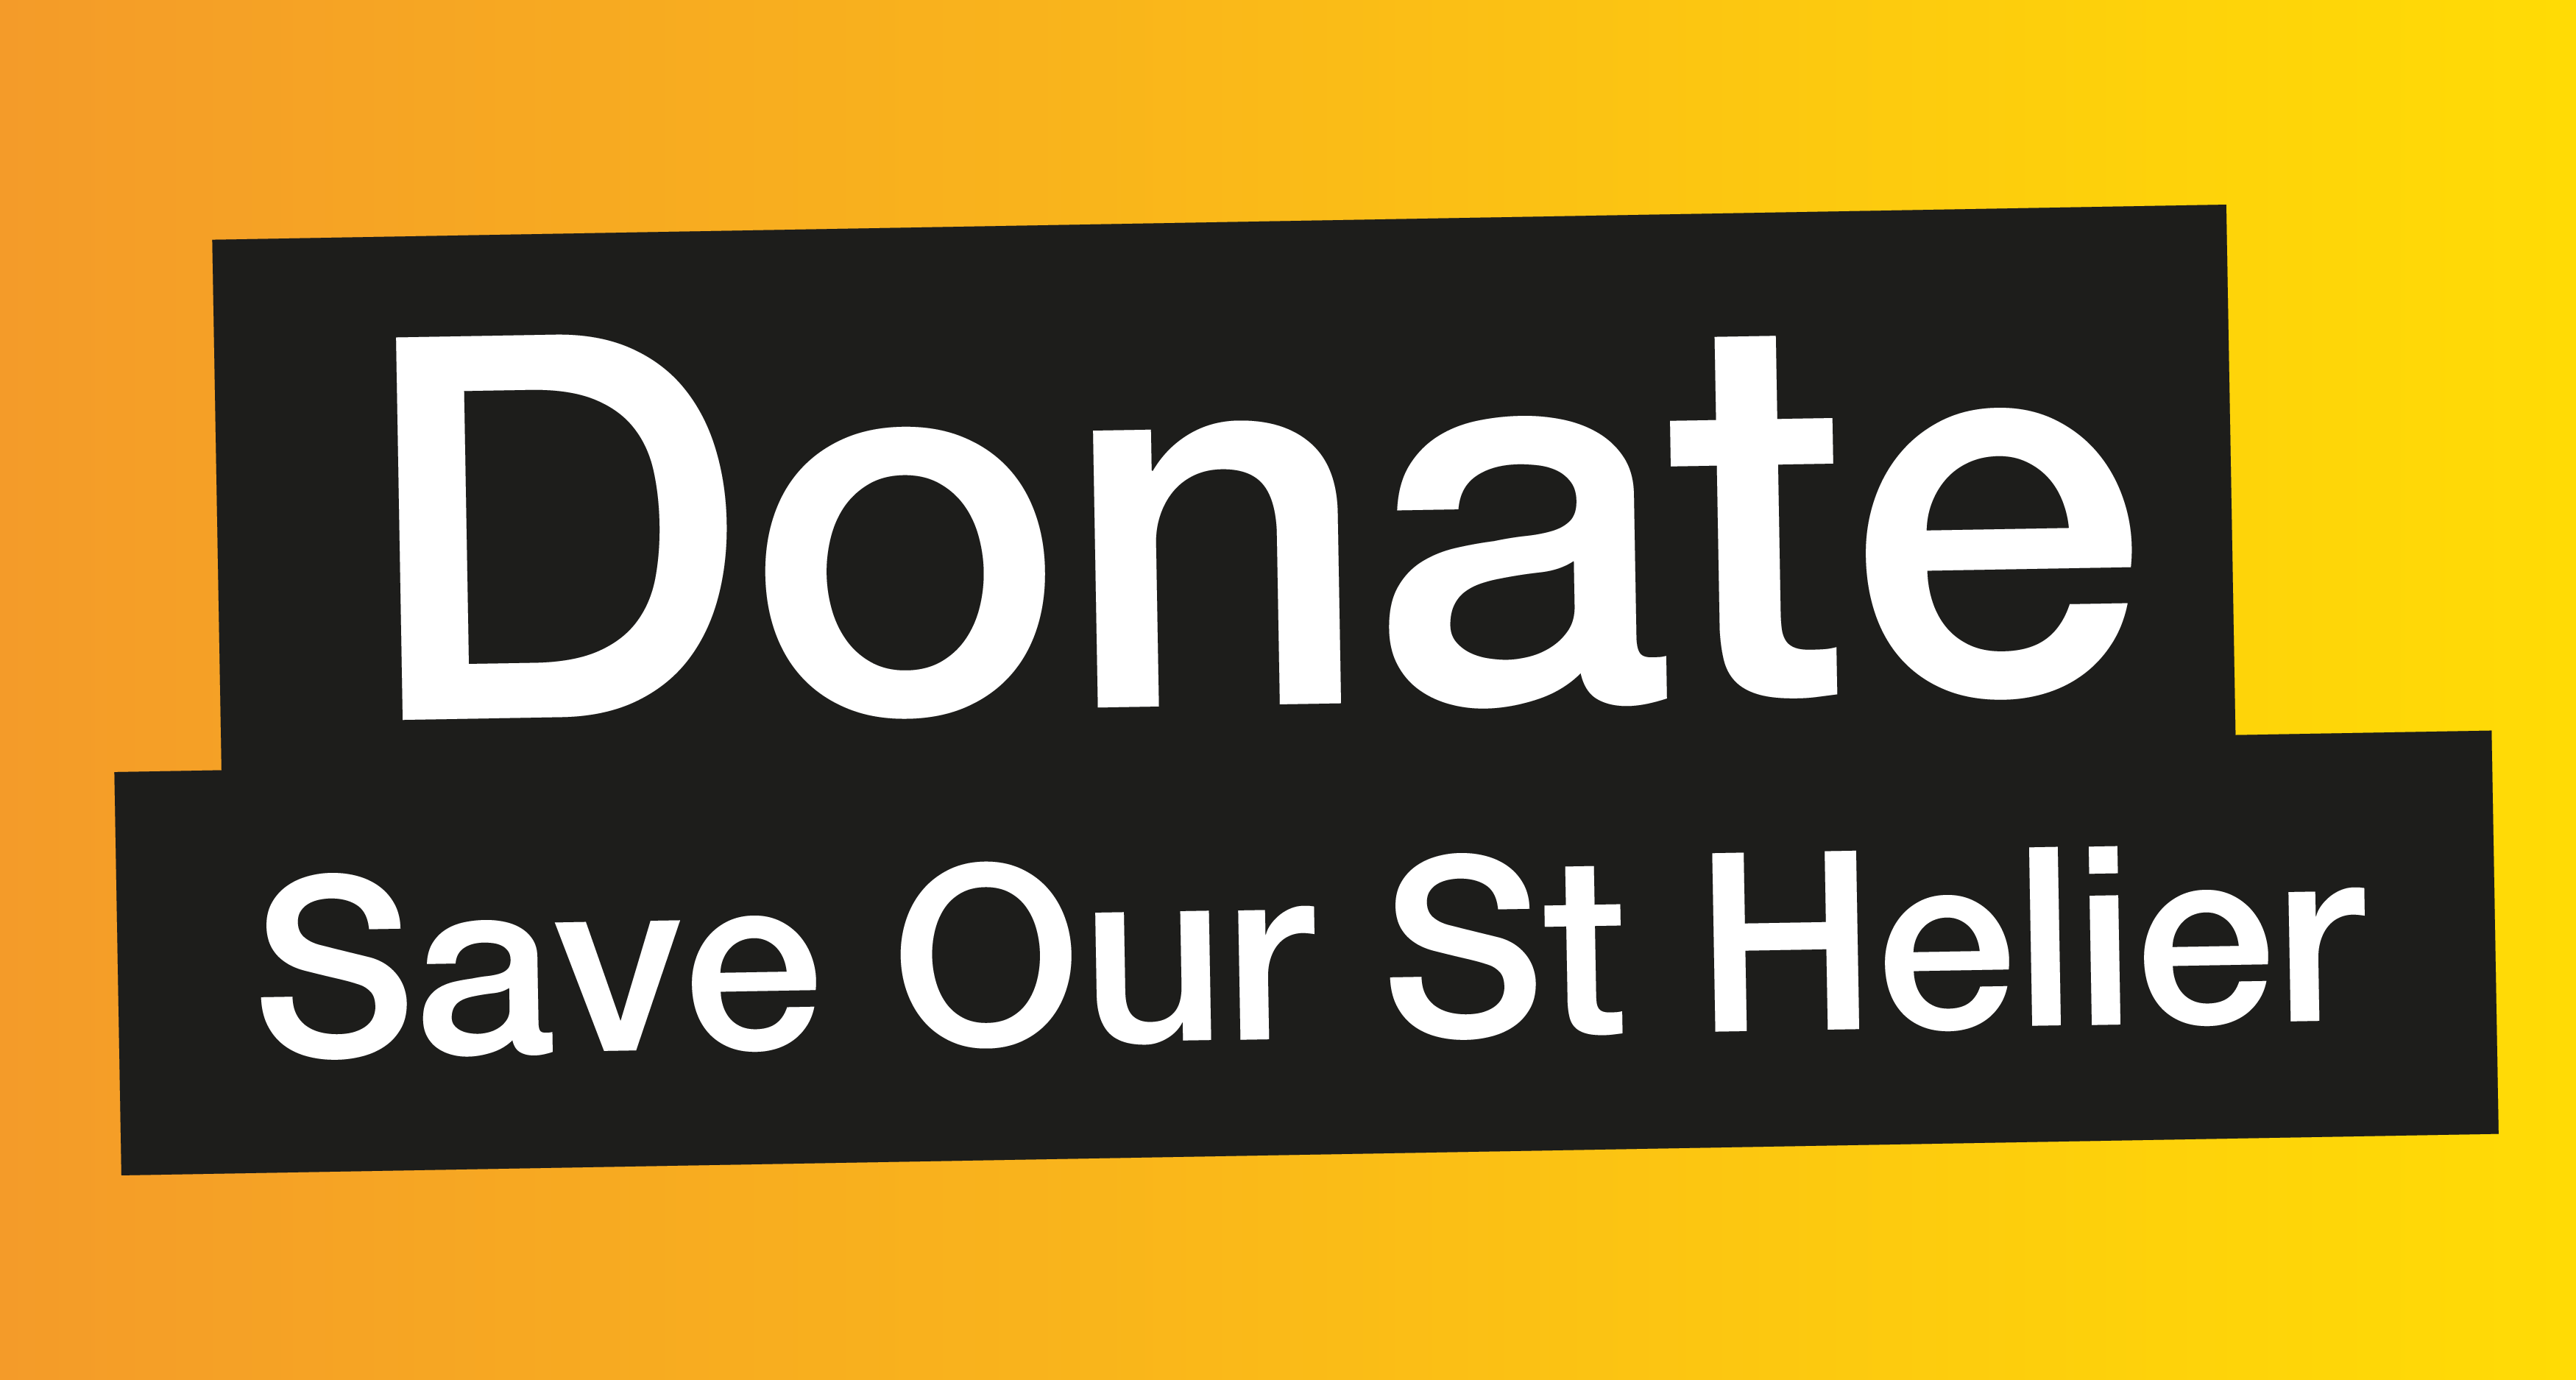 Donate to the Save Our St Helier campaign